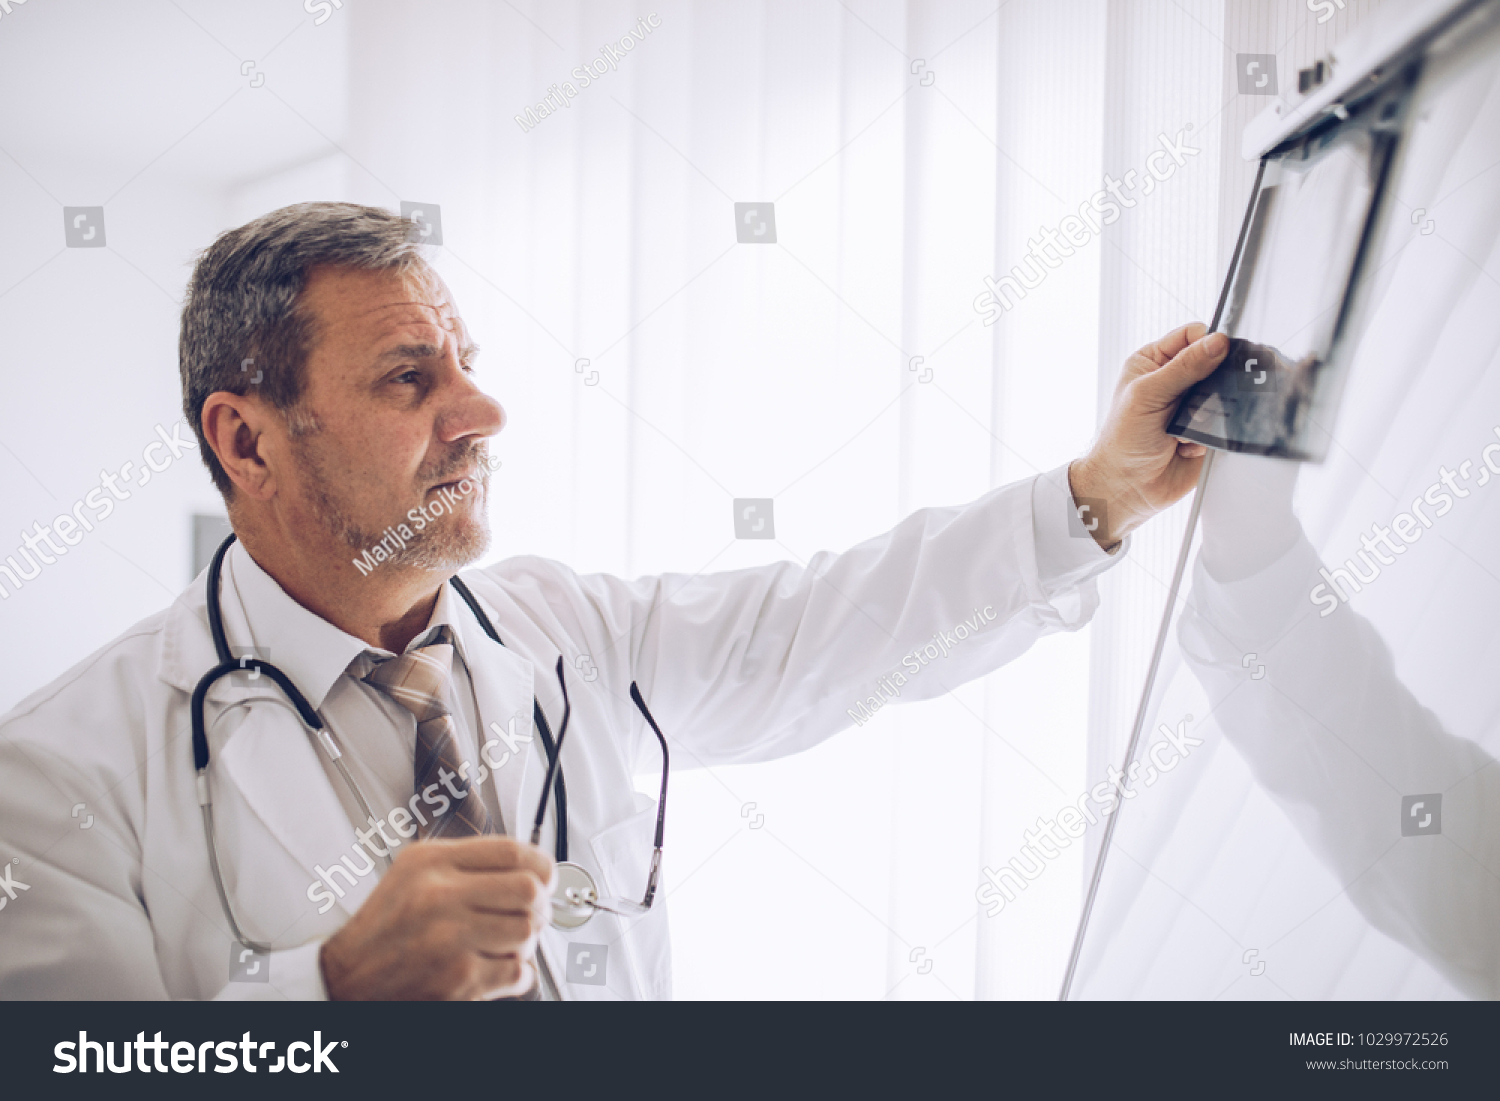 Radiologist Doctor Checking Xray Healthcare Medical Stock Photo